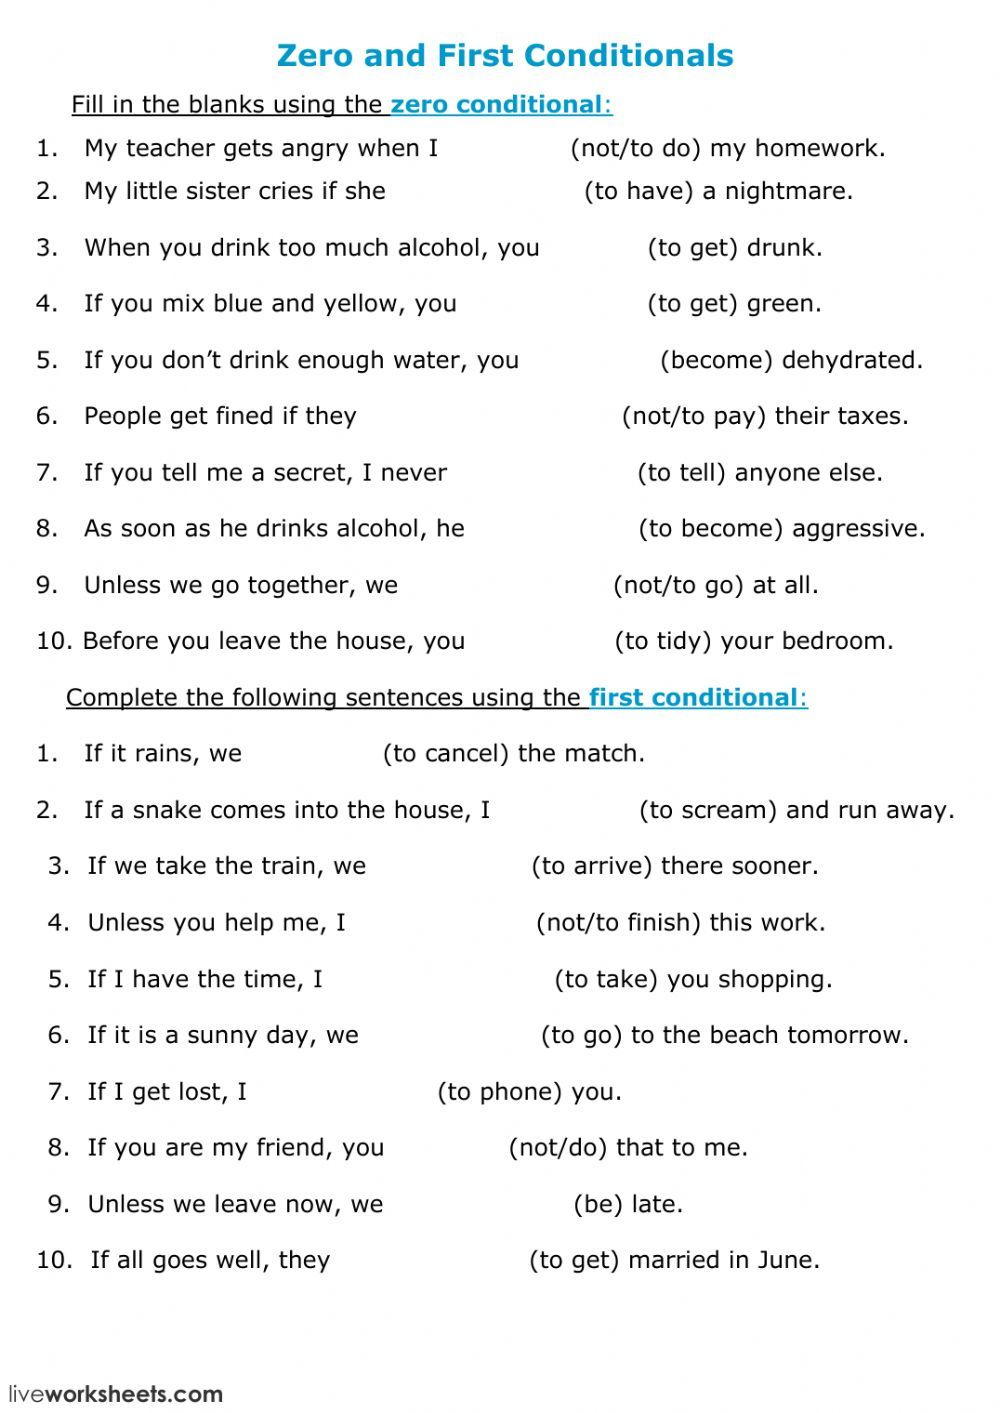 Conditional Sentences Interactive And Downloadable Worksheet You Can Do The Exercises Conditional Sentence English Teaching Resources Teaching English Grammar